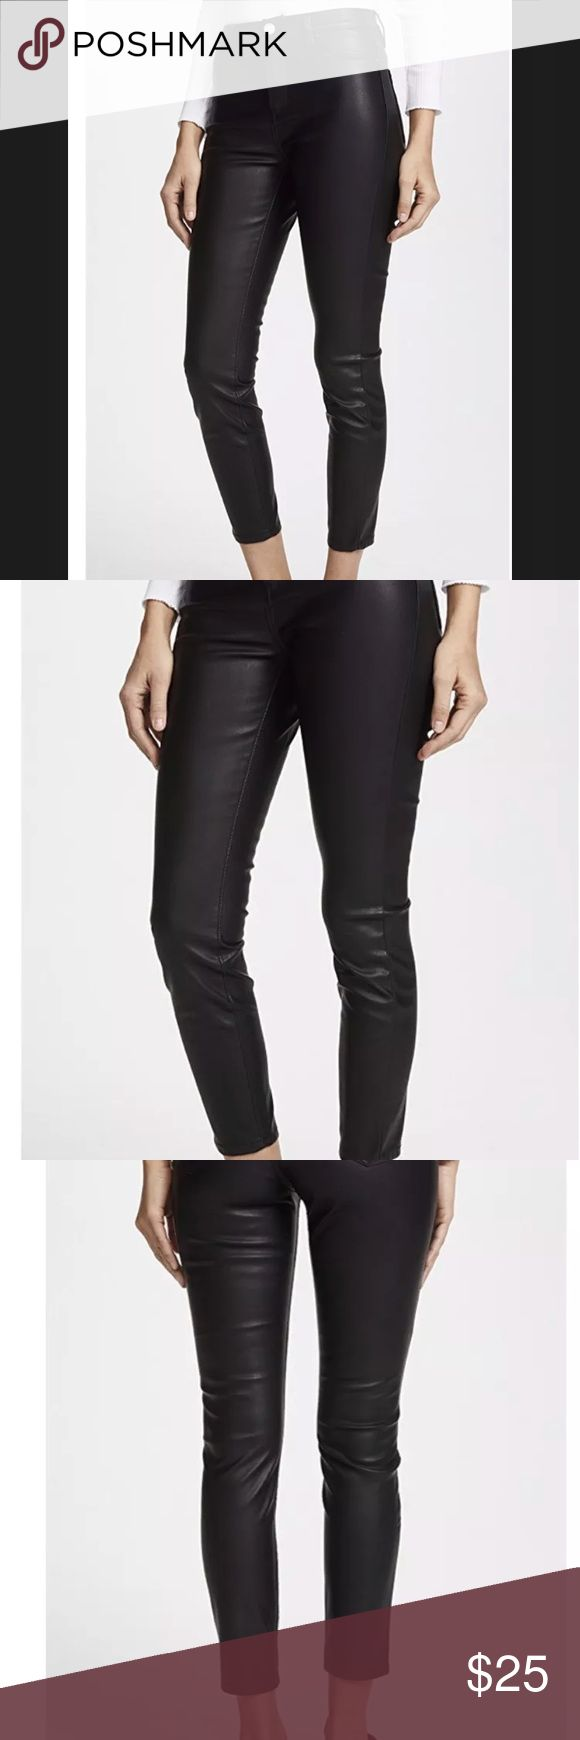 """Blank Denim Faux Leather pants - size 25 Never worn Blank Denim faux leather black pants. Size 25, fit true to size. Bought from ShopBop in 2017. Tags removed. Perfect condition. 26.75"""" inseam. 9.75"""" leg opening. 10"""" rise. Blank Denim Pants Skinny"""